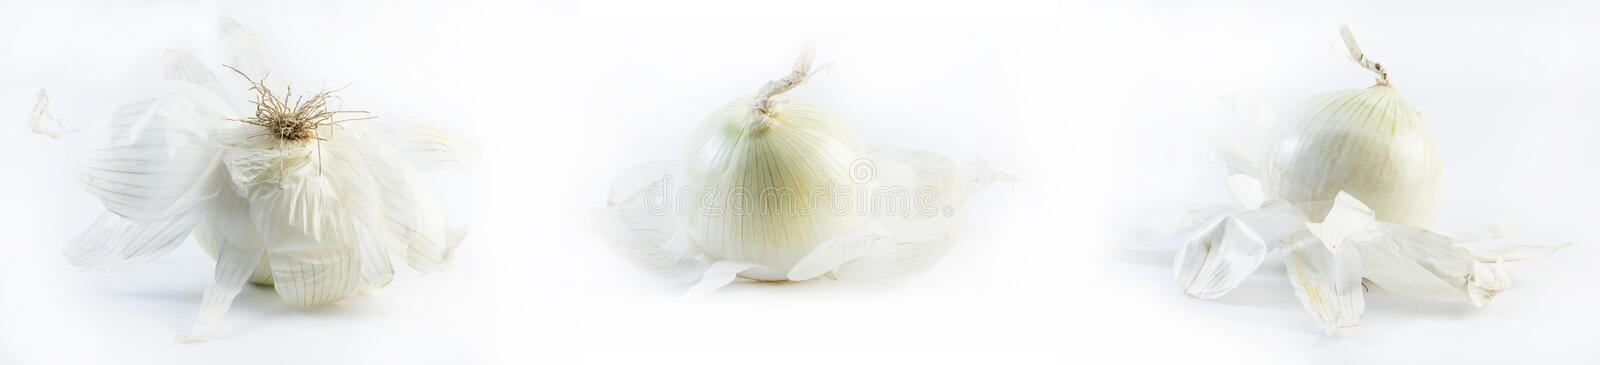 Set of onions on a white background stock images